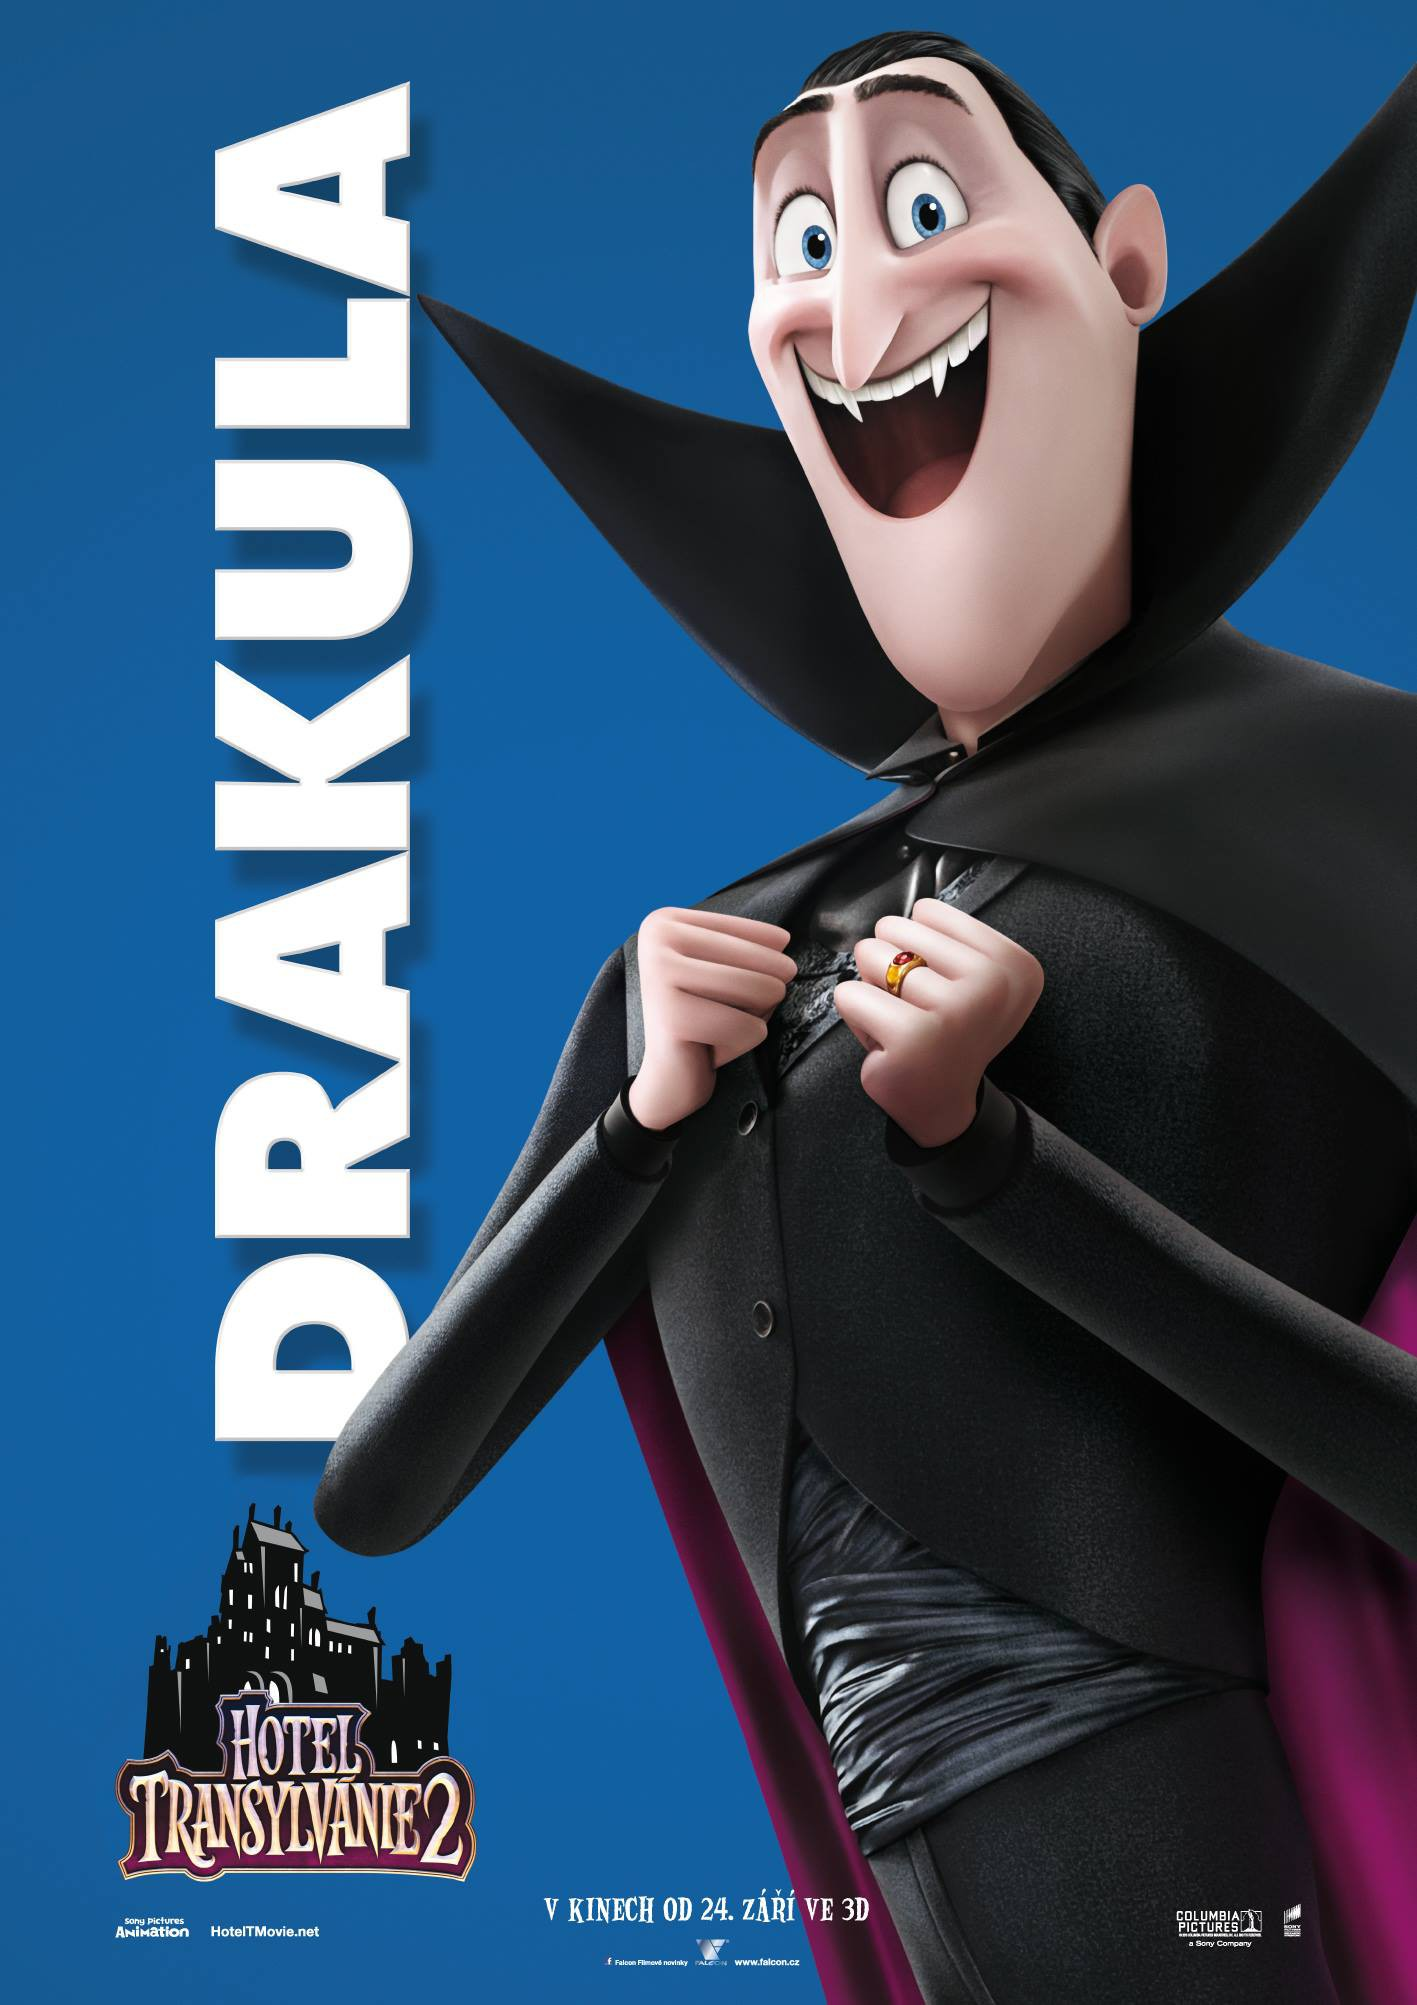 Hotel transylvania 2 character posters new new things for Character hotel